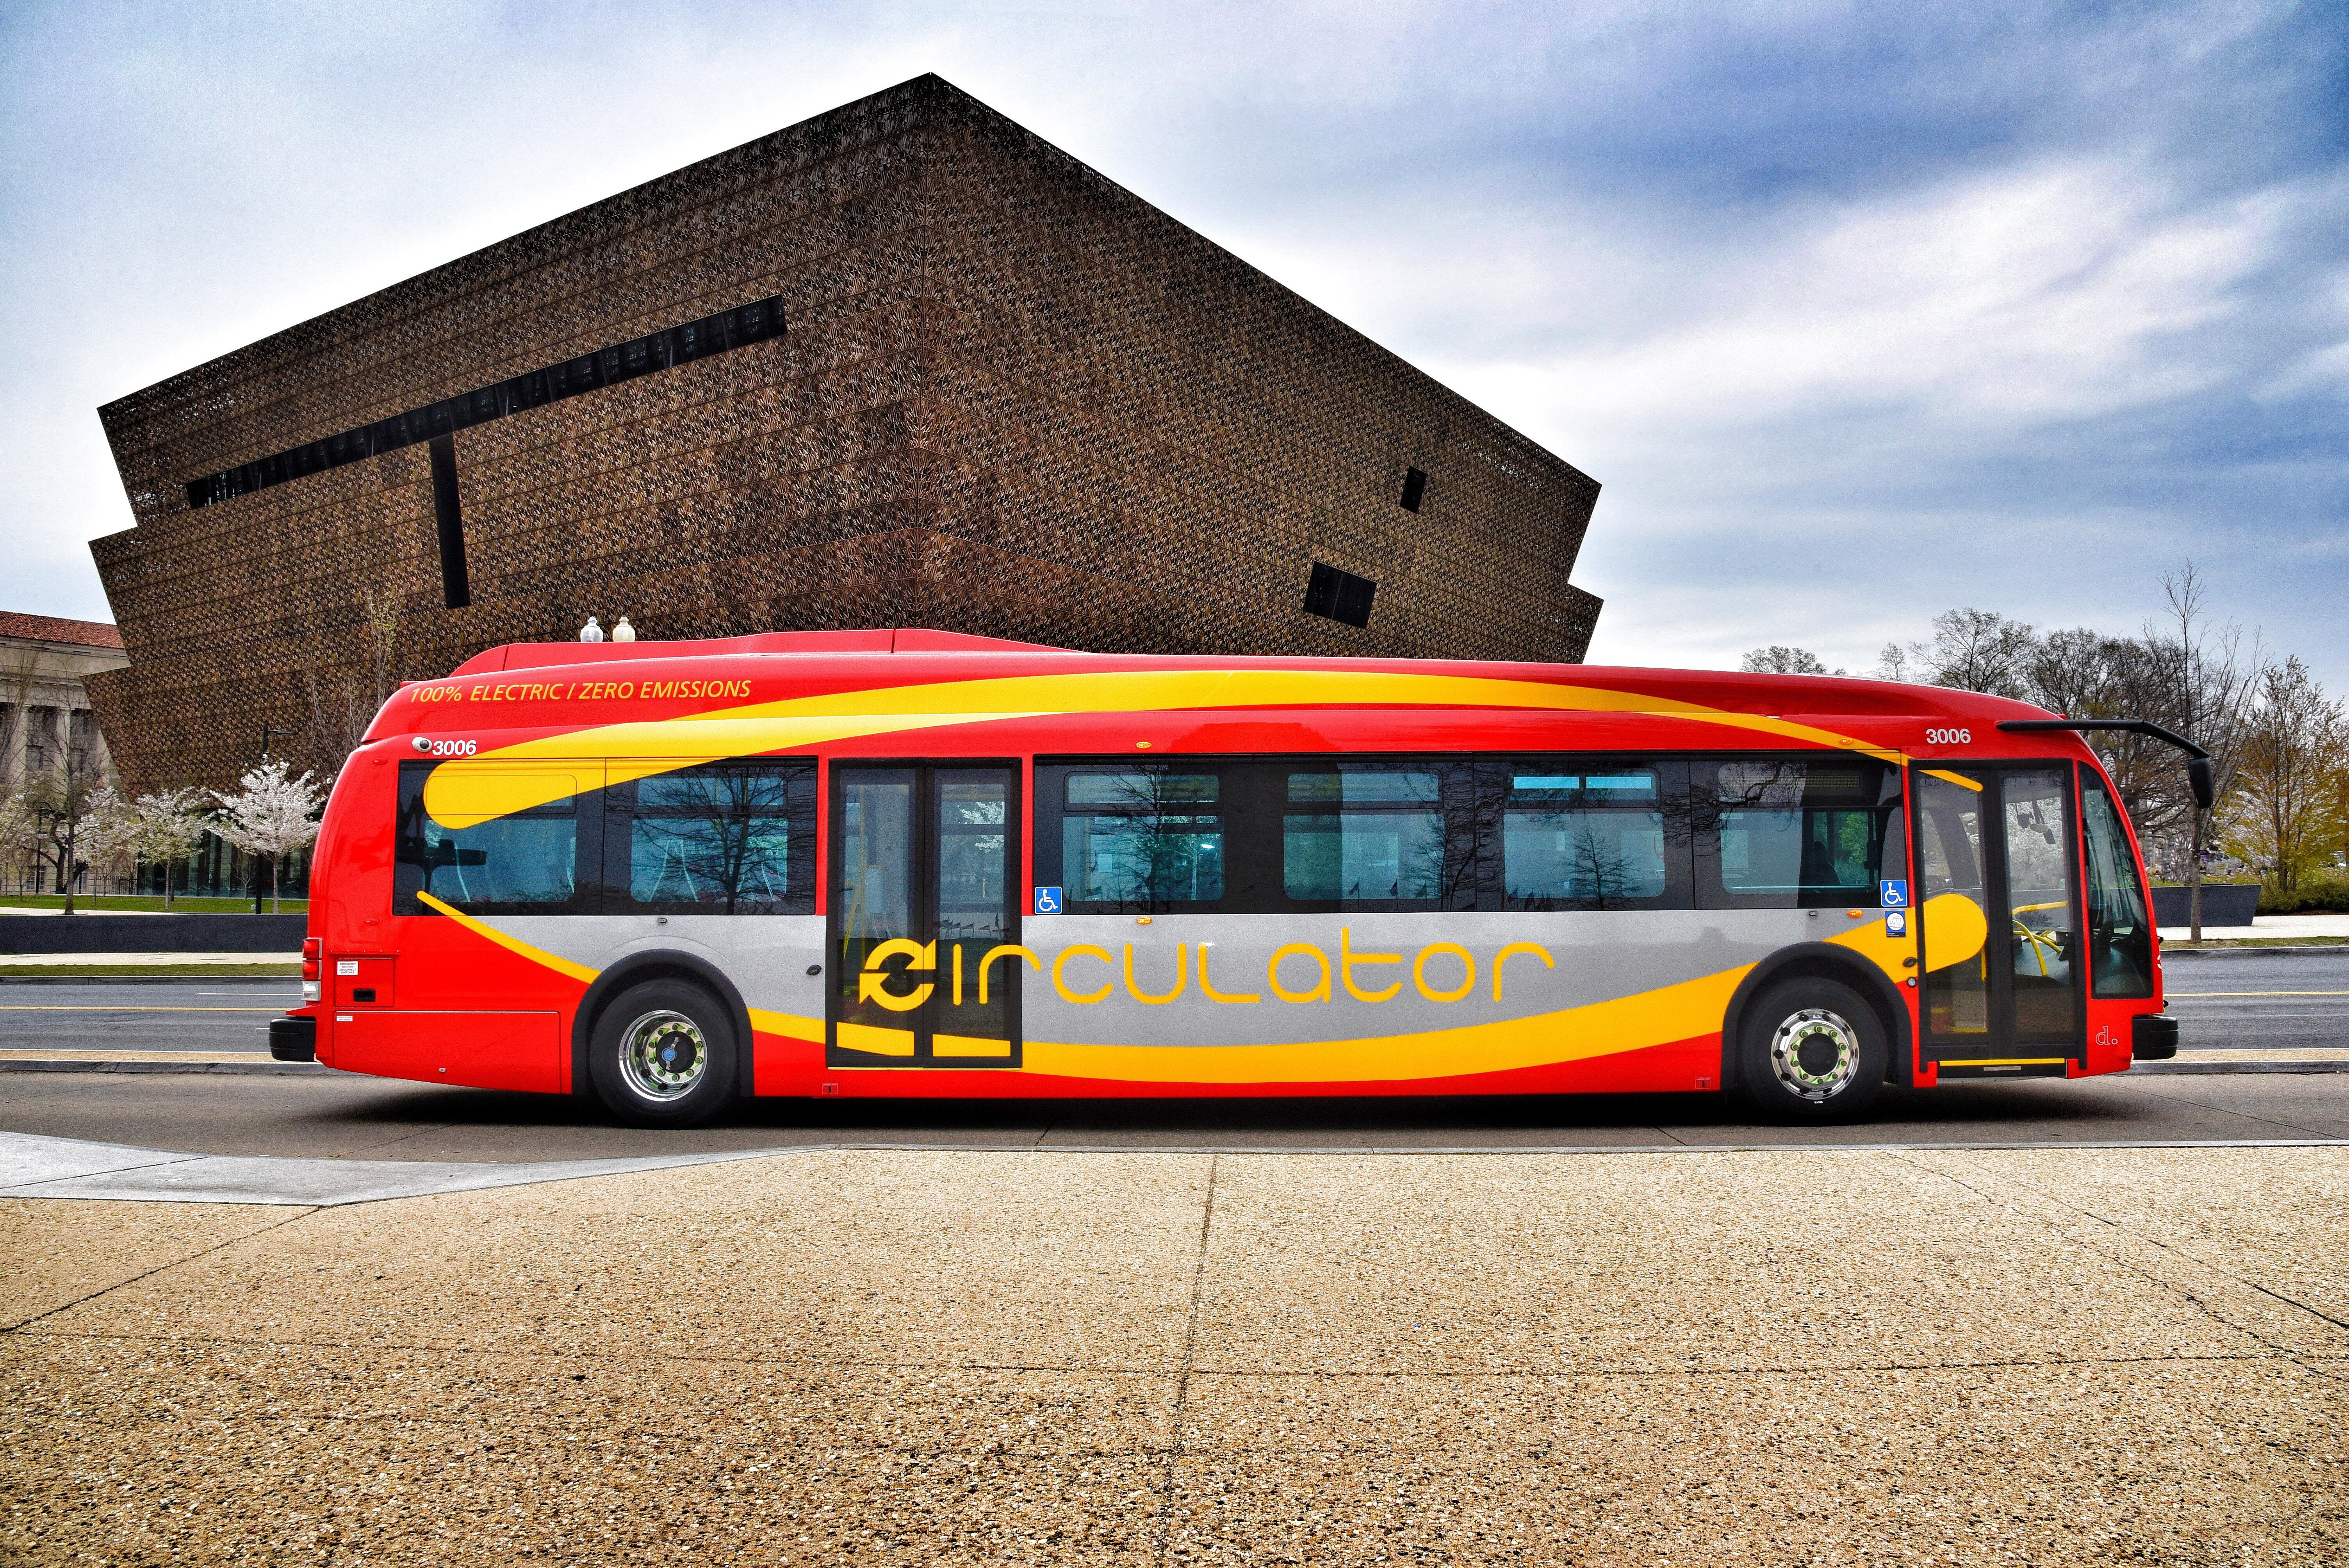 A red and yellow e-bus, the first used in Washington as passenger transport.